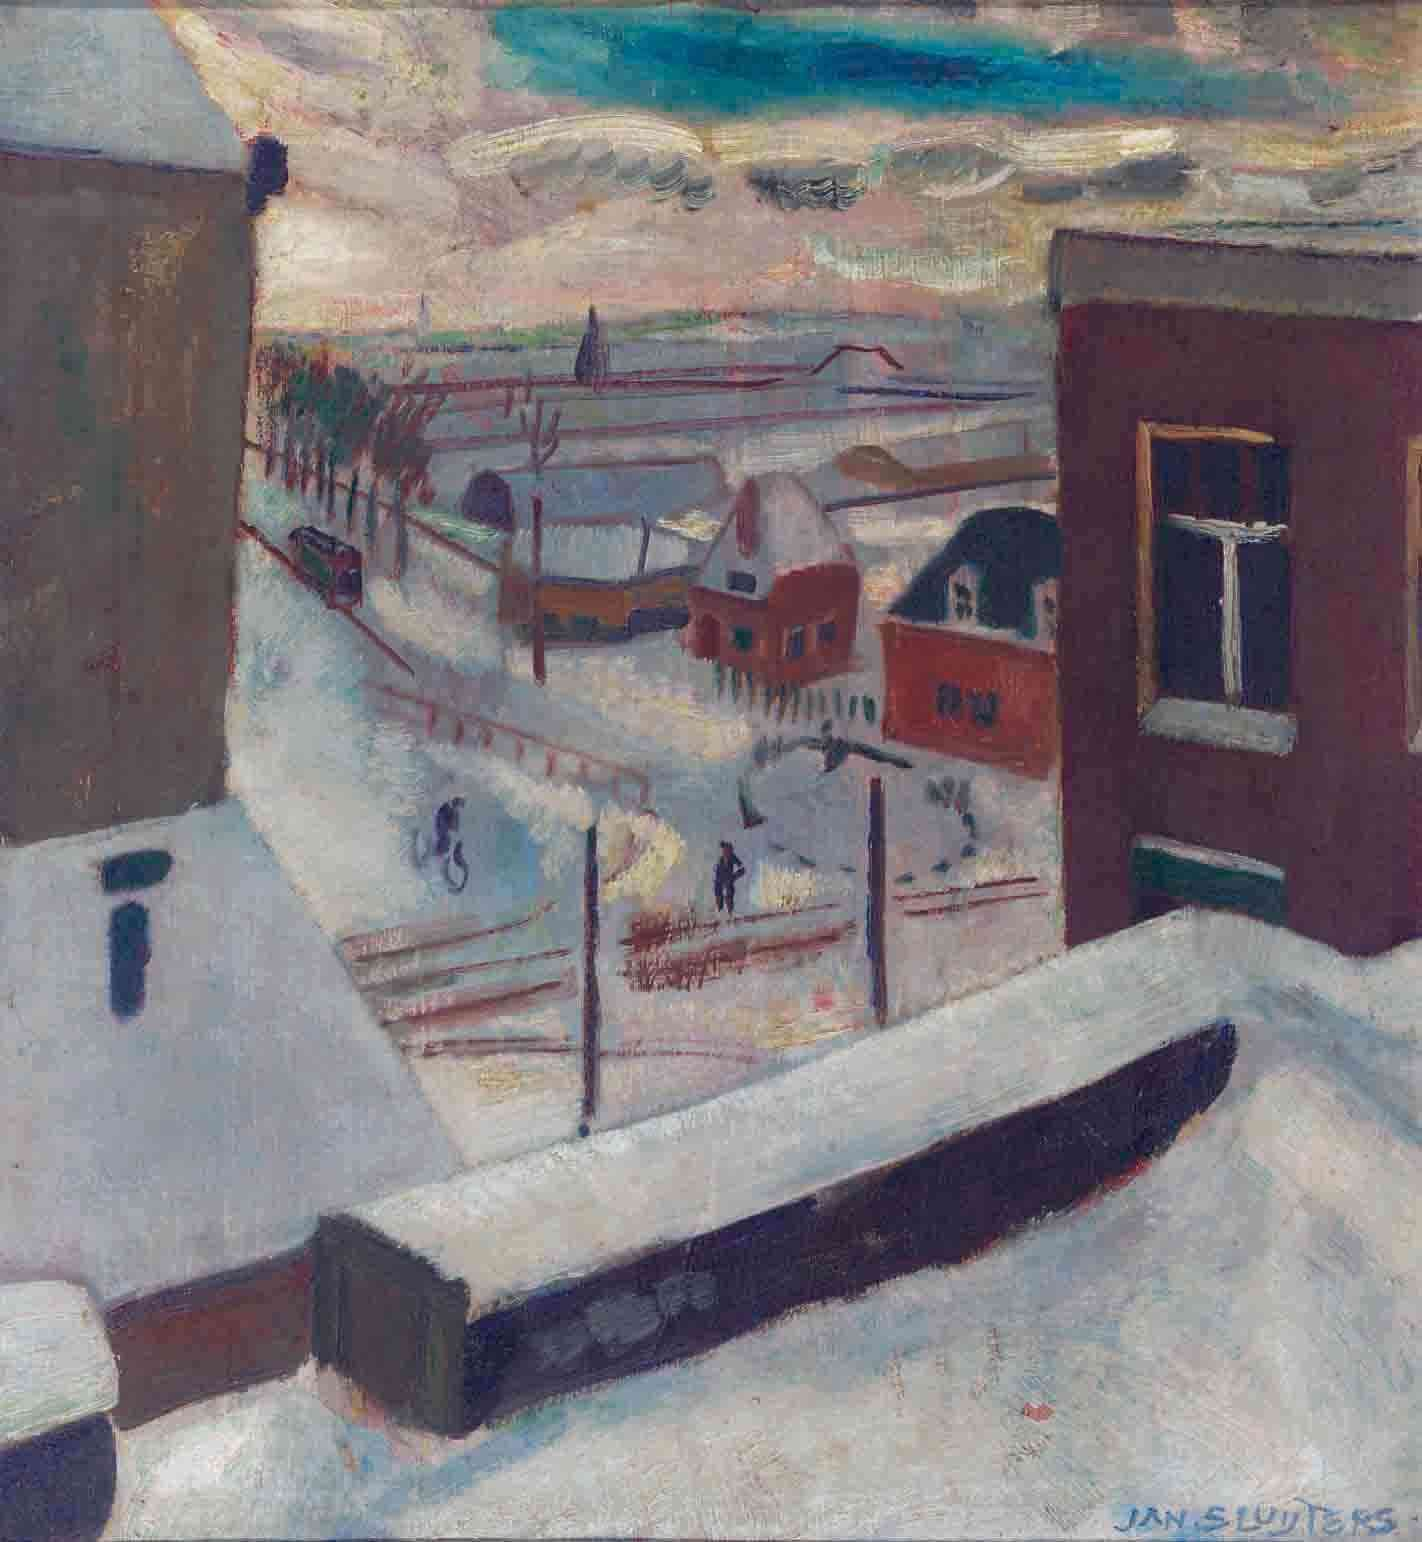 Gezicht op de Amstelveenscheweg in de winter Jan Sluijters (1881-1957) - Kunsthandel Studio 2000